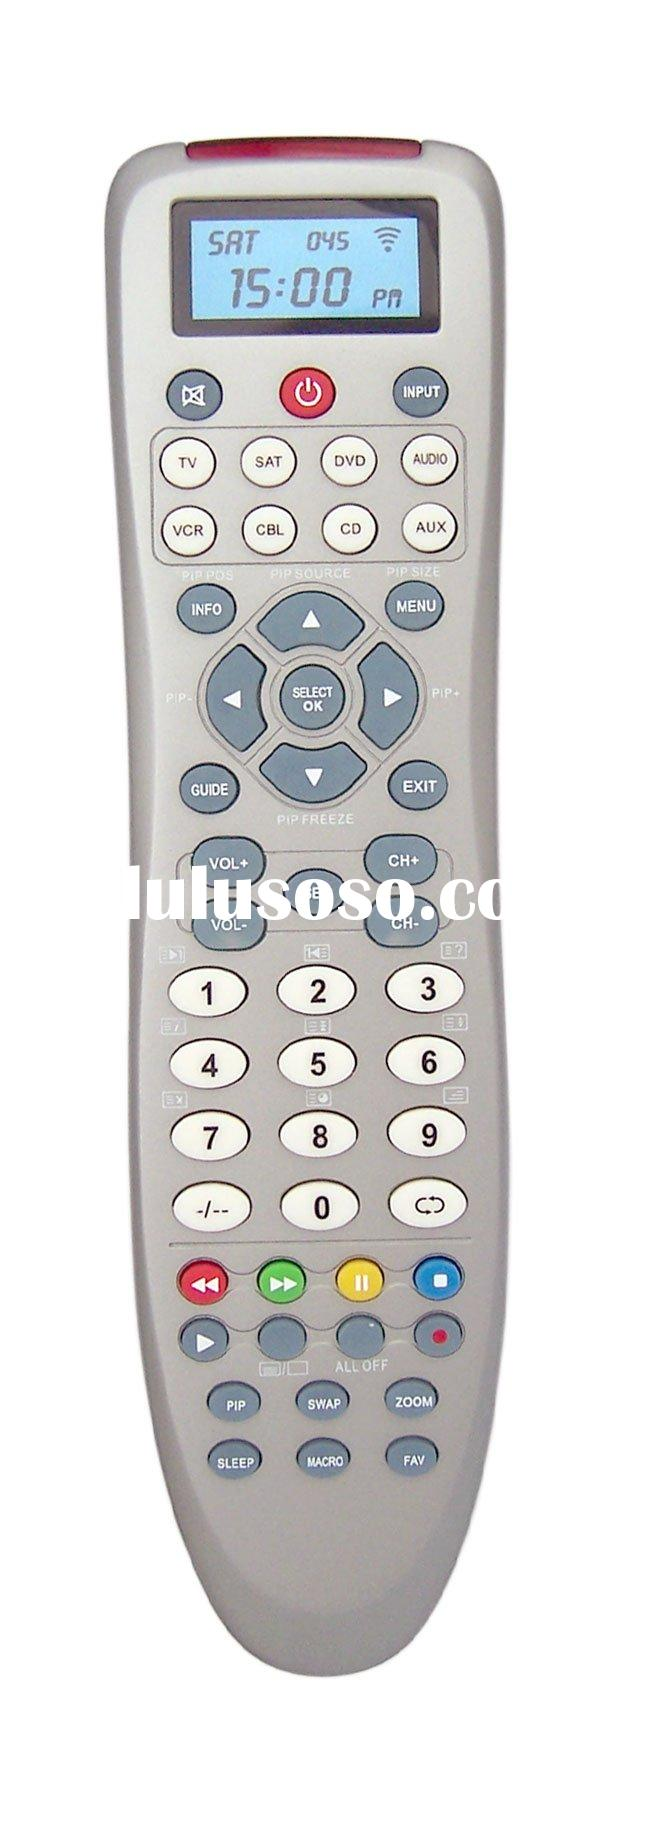 8 in 1 universal remote control with backlight LCD